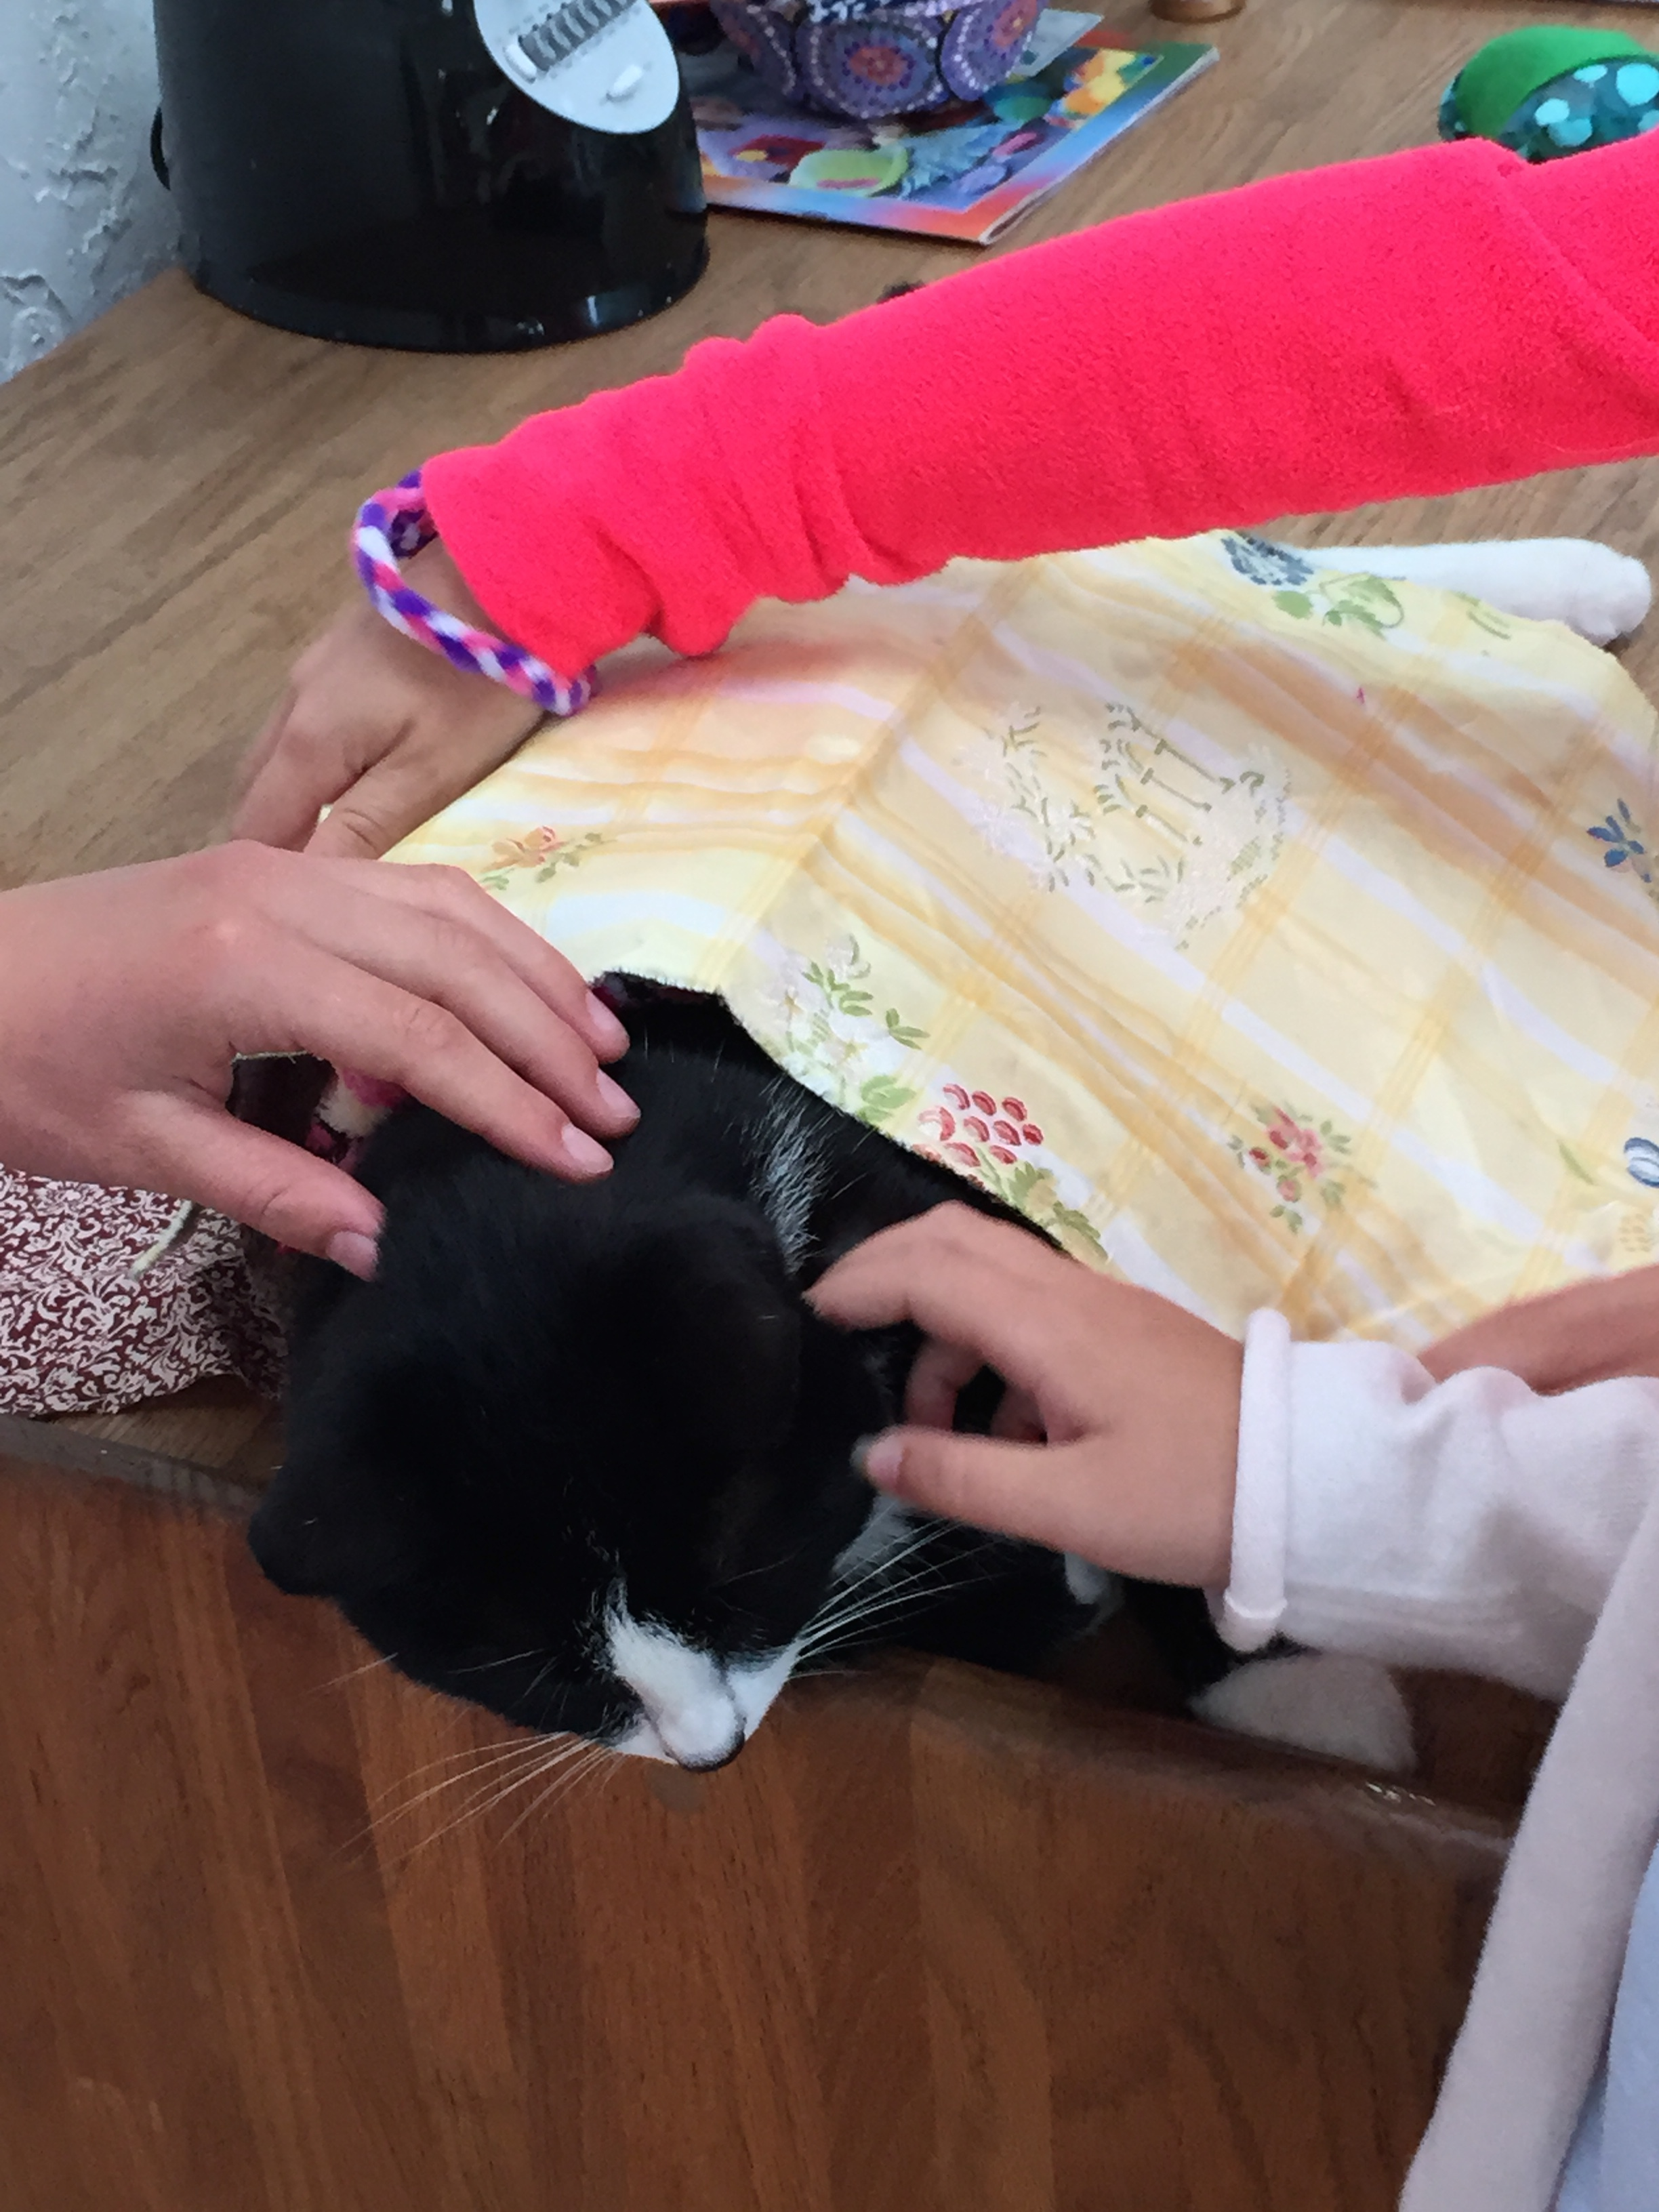 Tux the distractor being taken care of.